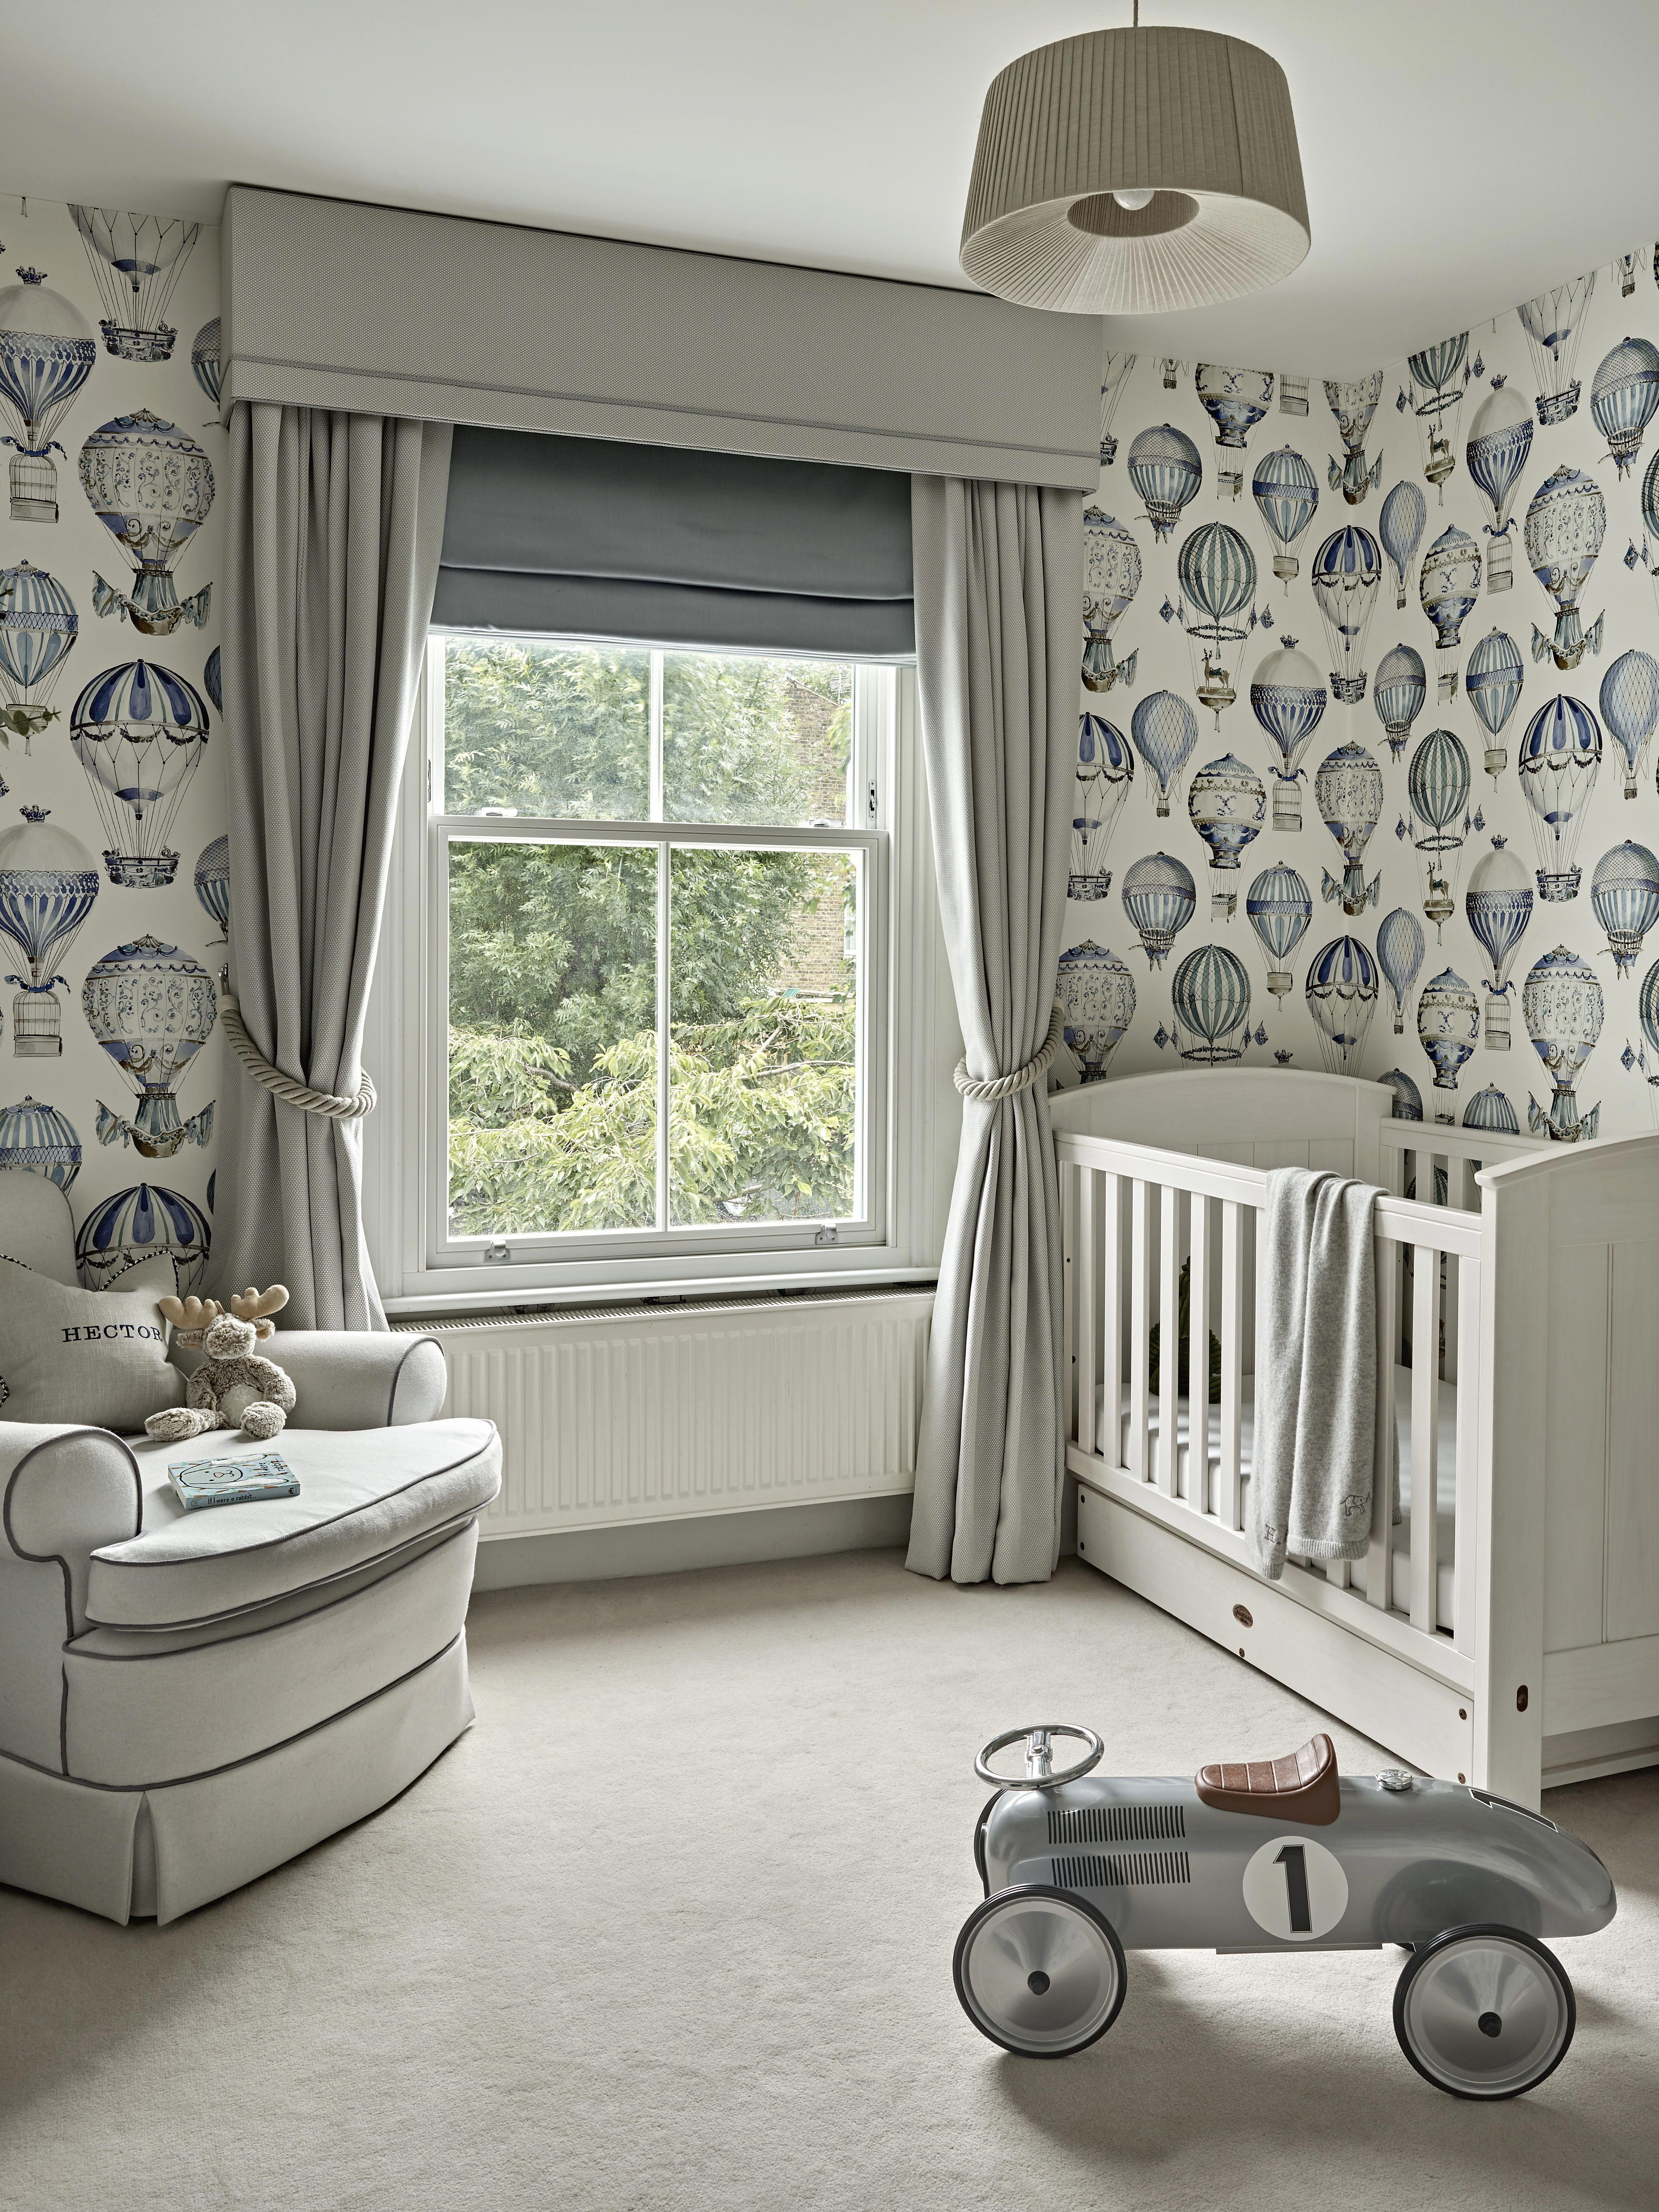 Baby London magazine creating your dream nursery